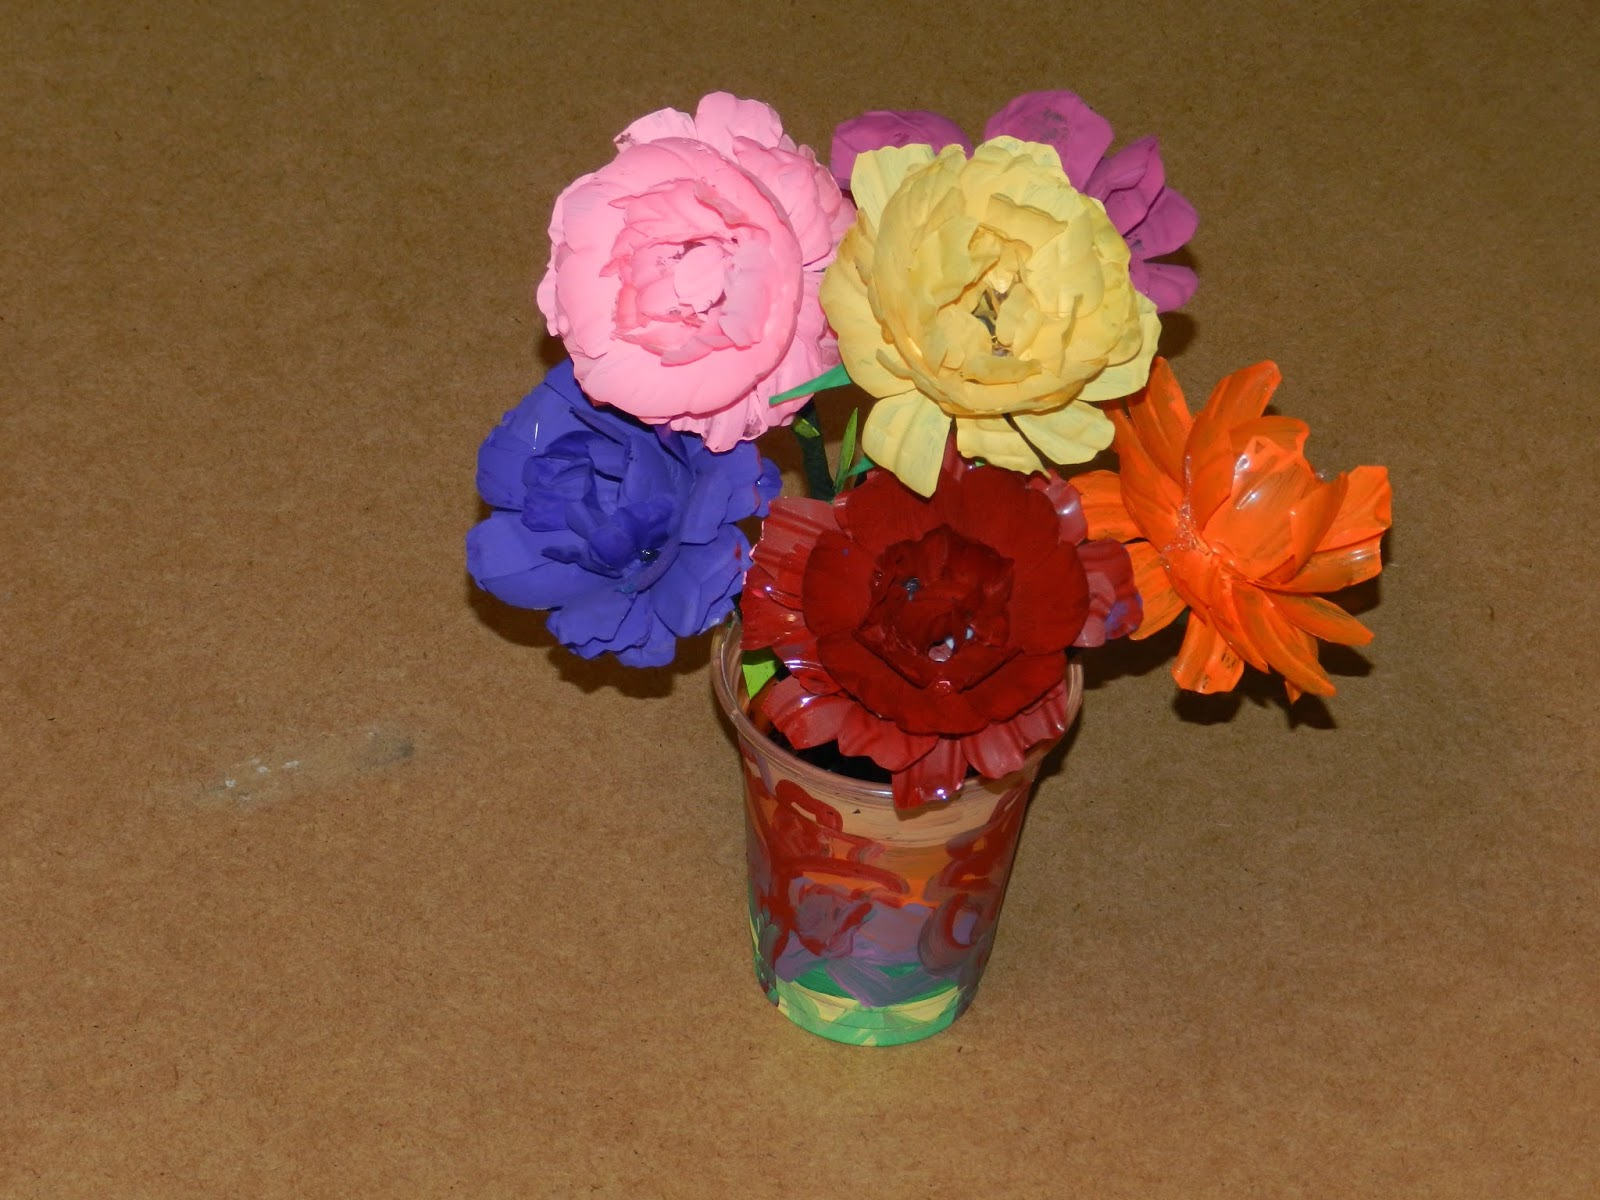 Creative diy crafts recycle and diy rhinoculous flowers with creative diy crafts reviewsmspy